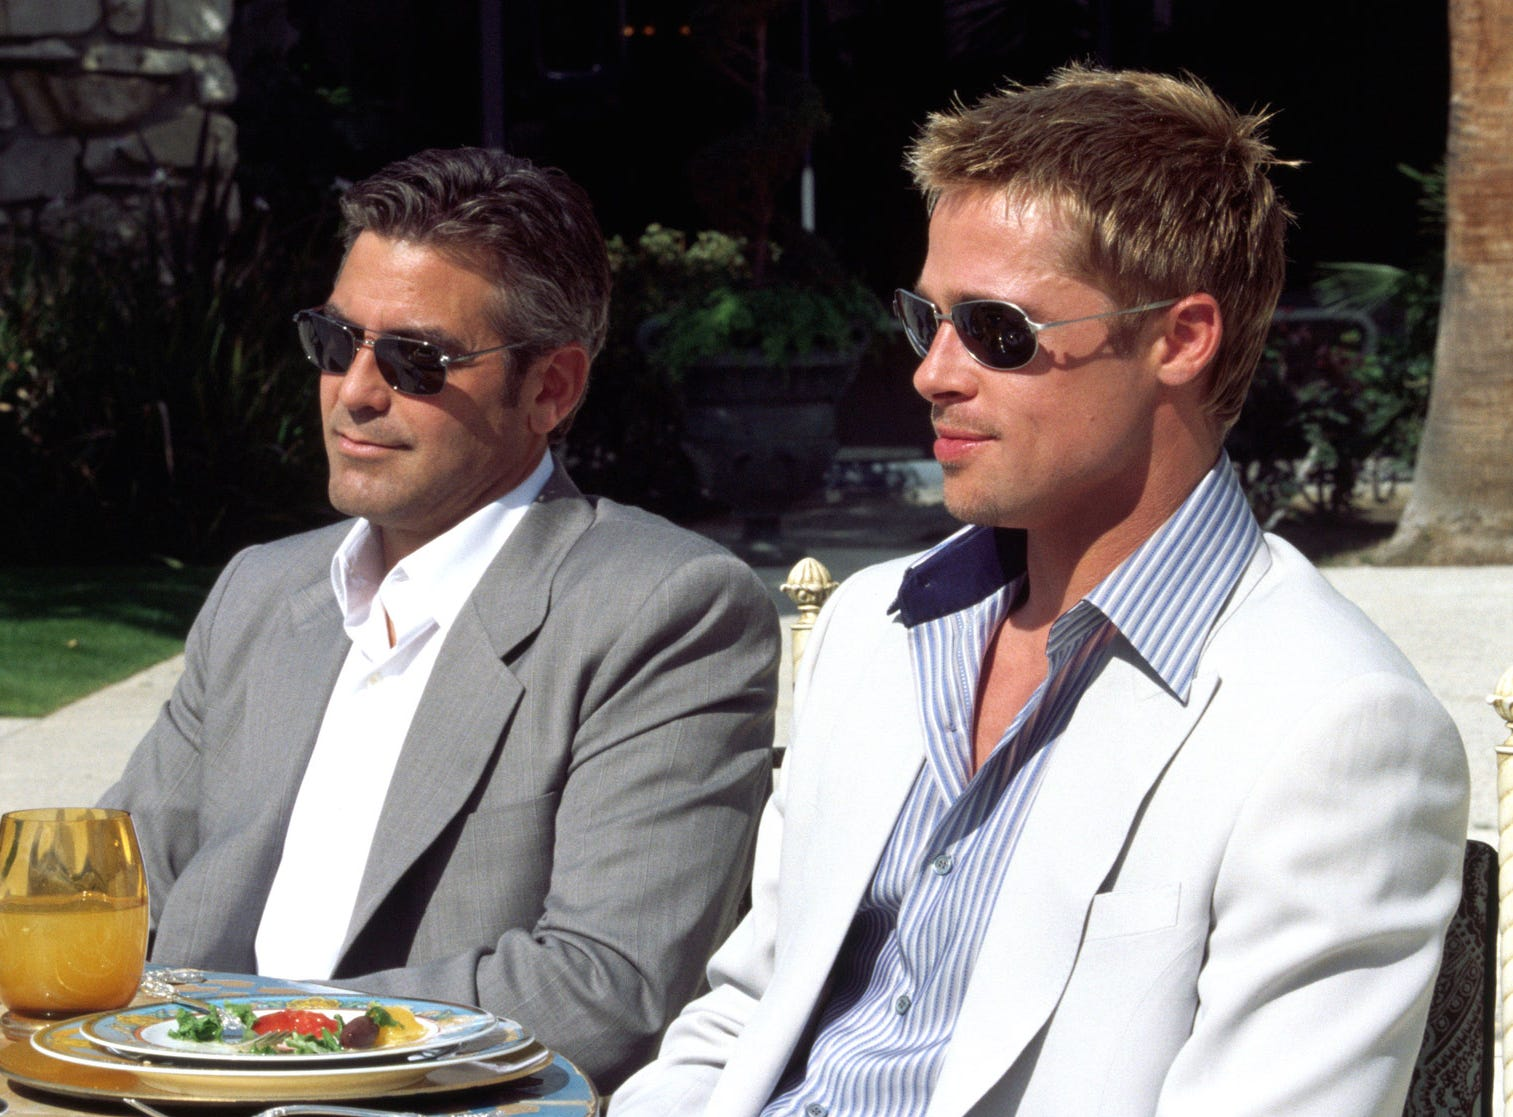 'Ocean's 11': George Clooney and Brad Pitt in a scene from the 2001 reboot of the Frank Sinatra caper. Nothing says over-the-top style like a gorgeous cast pulling off a heist in a posh Las Vegas hotel.